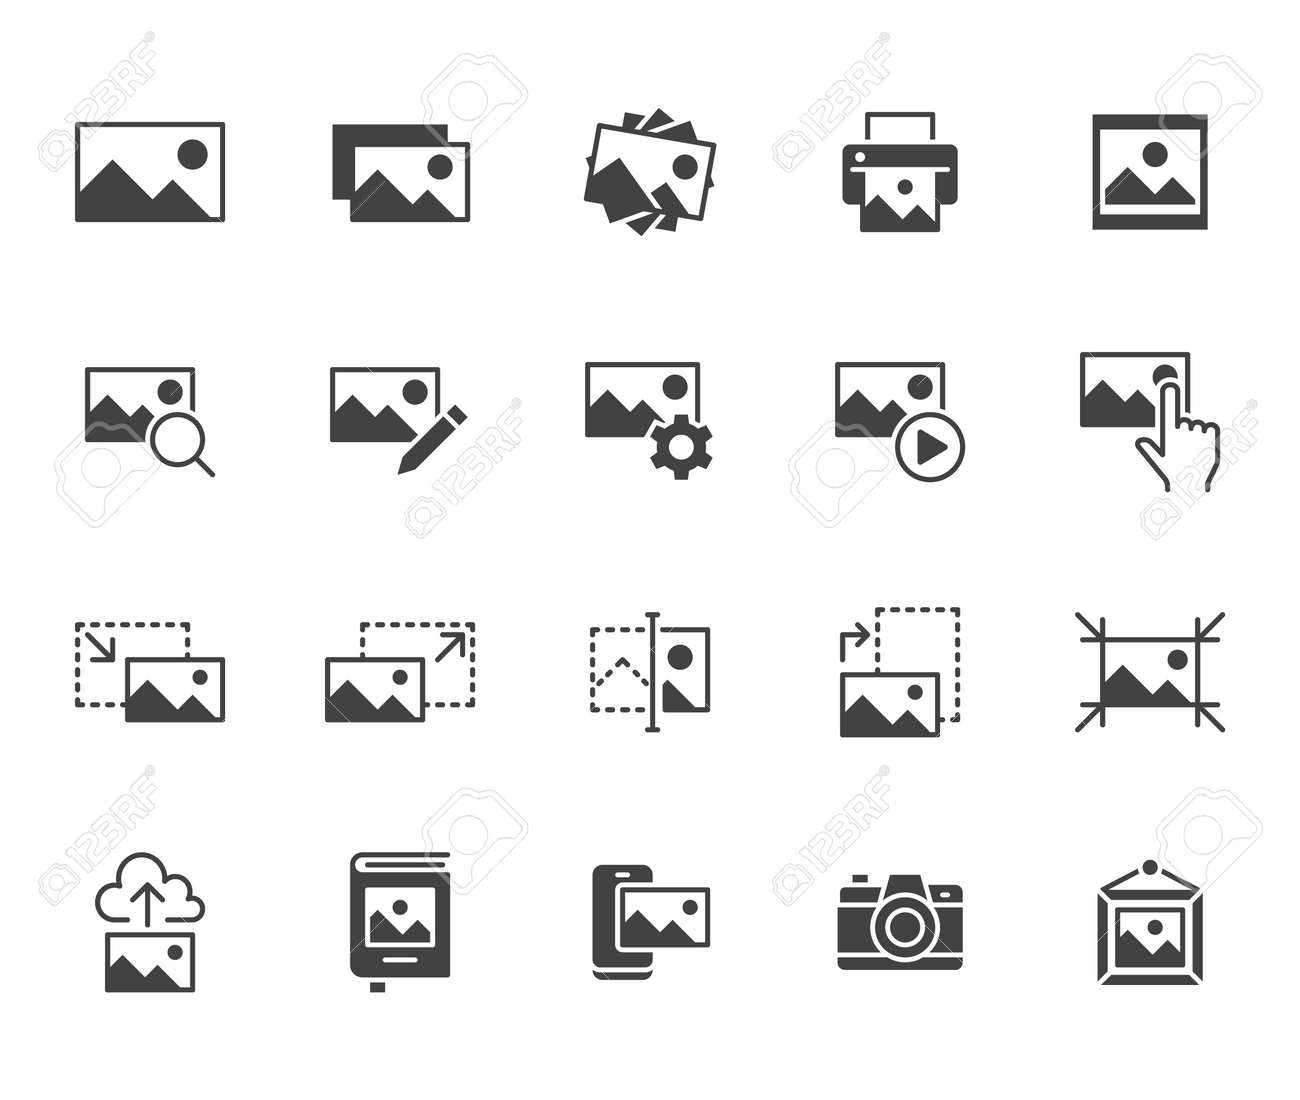 Photo flat icon set. Image gallery, picture frame, printer, file resize, camera black minimal silhouette vector illustrations. Simple glyph signs for photos editor application. - 161710103